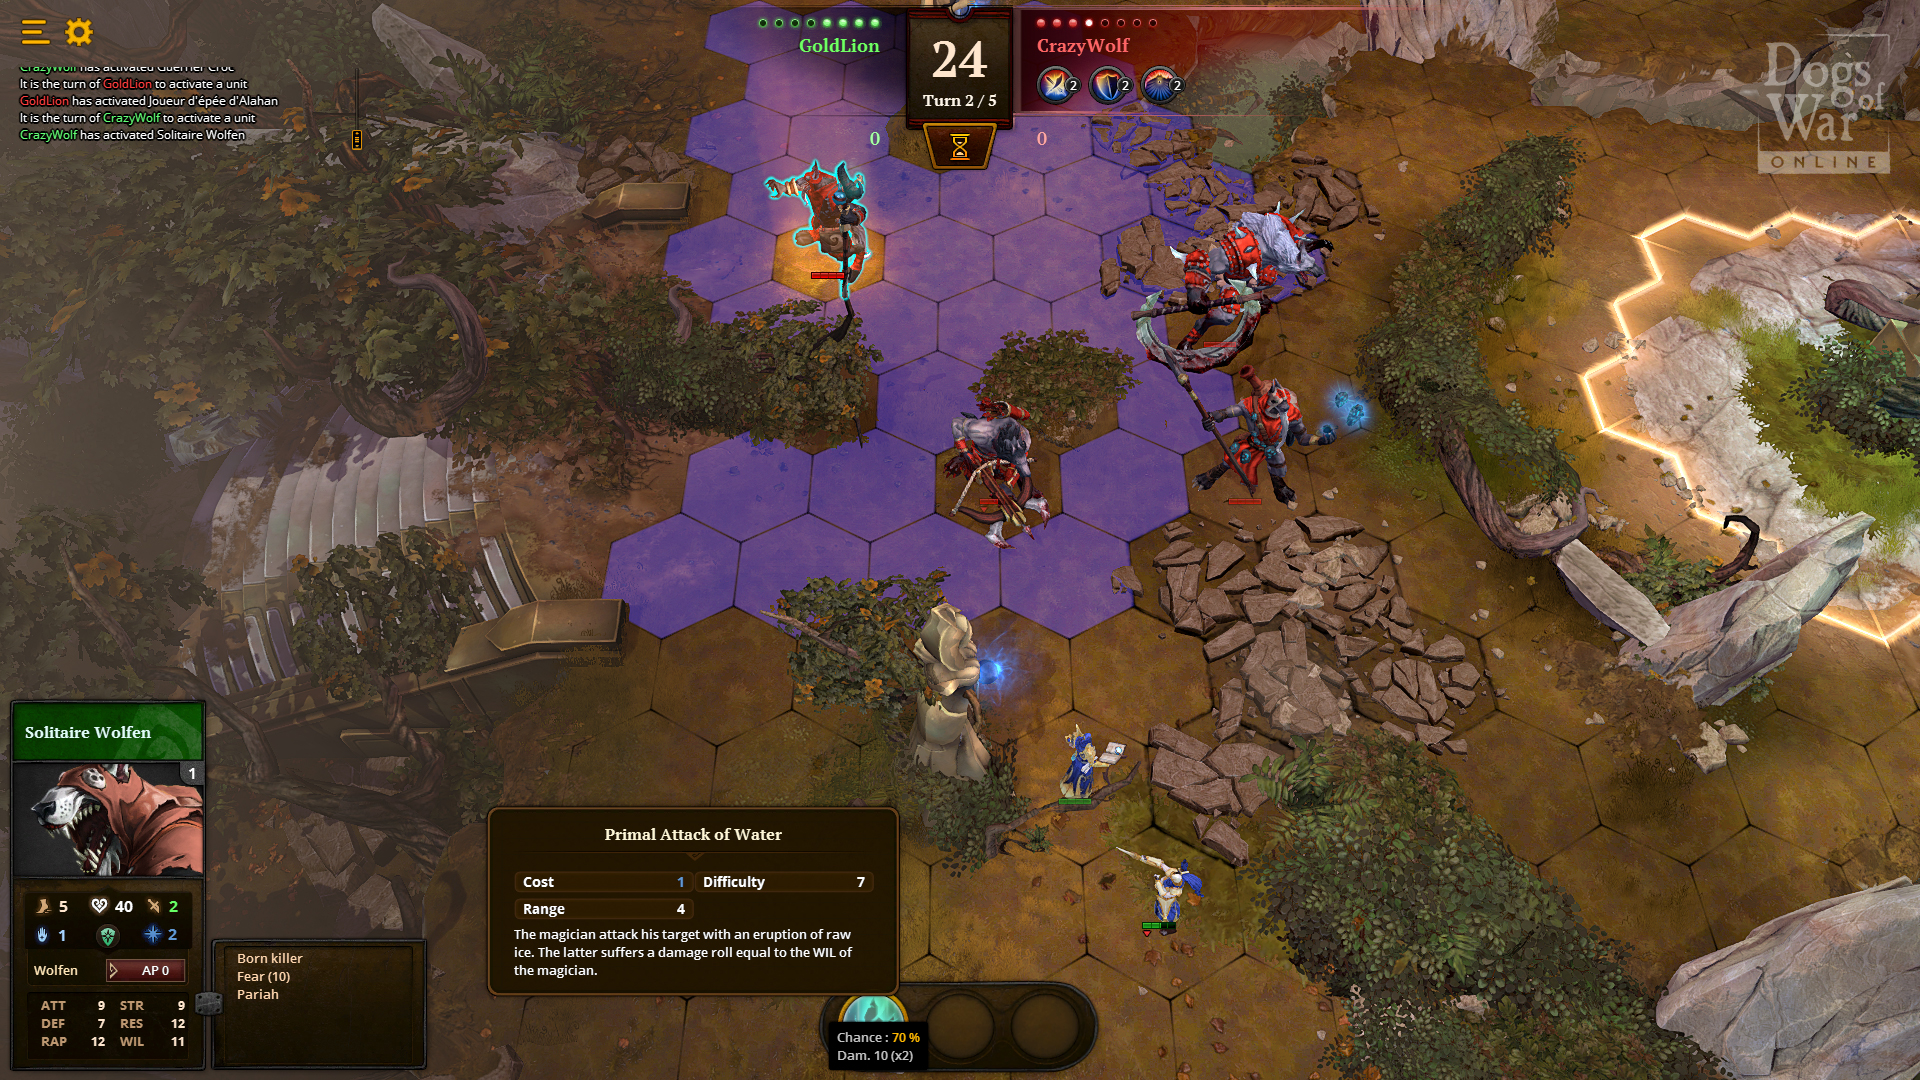 Dogs of War Online Gameplay Screenshot 3